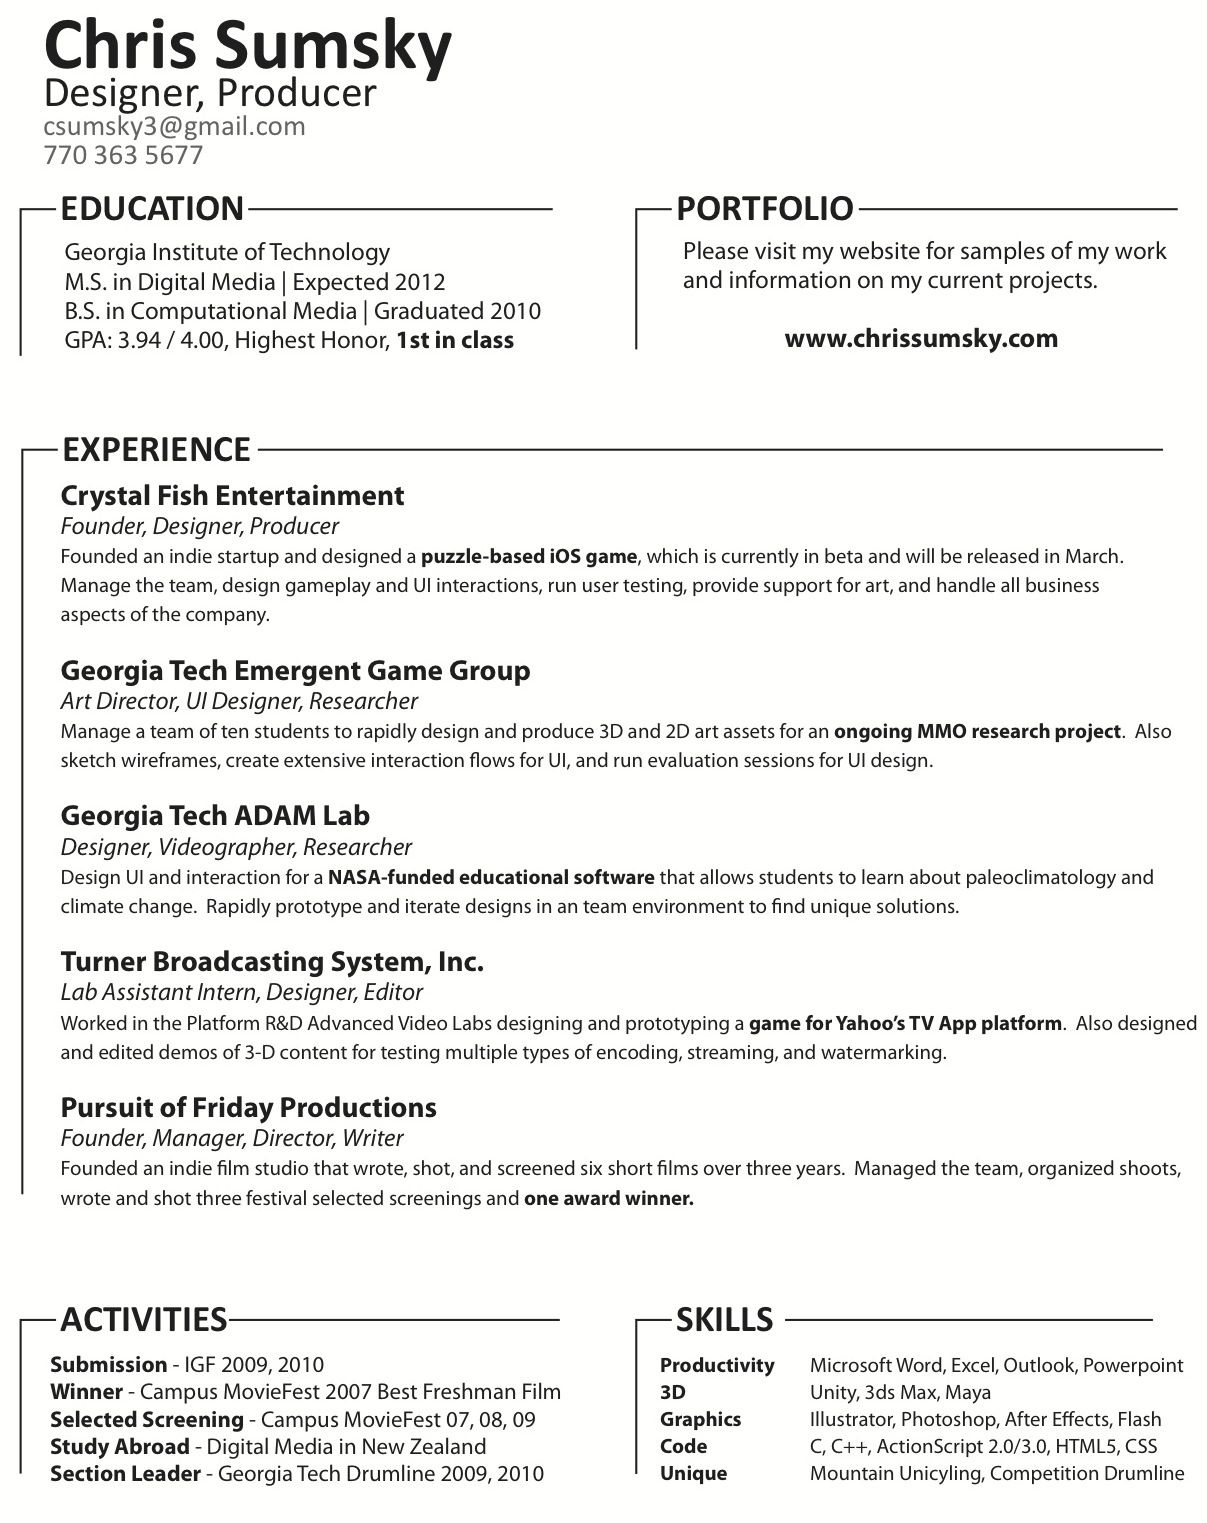 Http Www Chrissumsky Com Images Sumsky Resume Jpg Essay Writing Georgia Institute Of Technology Dissertation